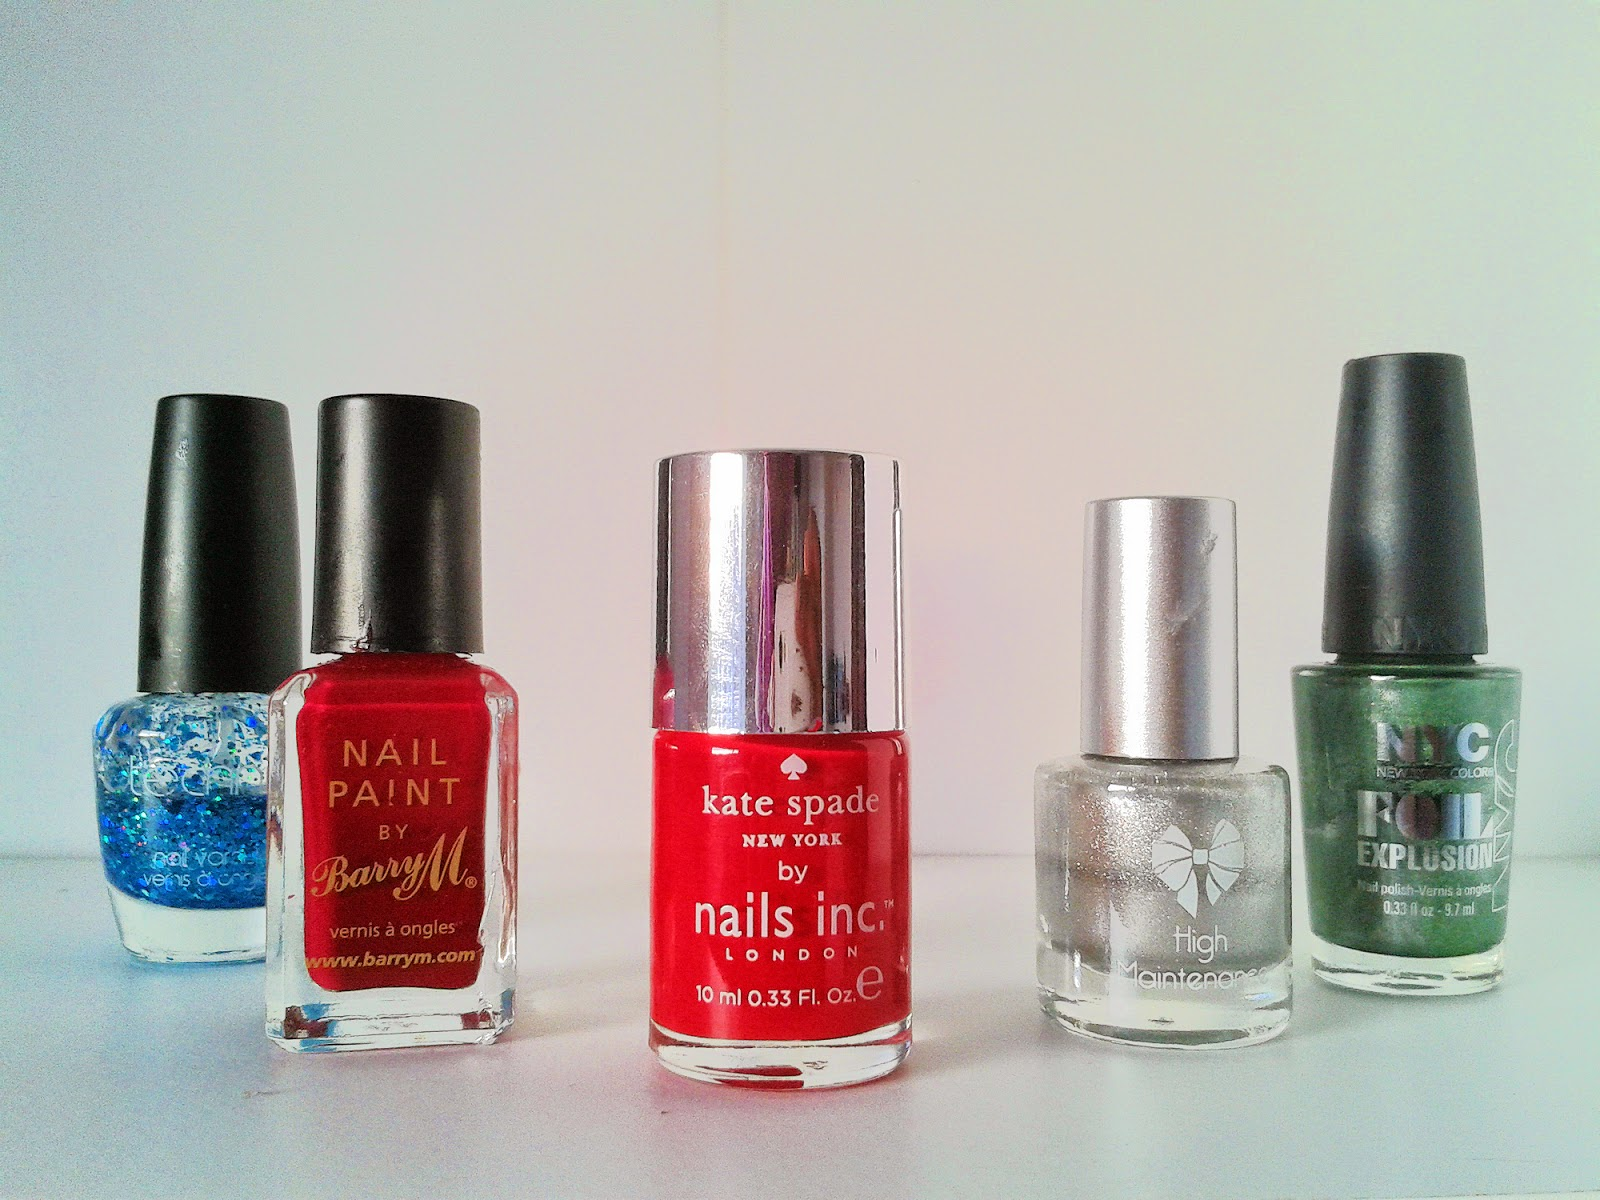 A shot of five nail polishes. From left to right: glittery blue, dark berry, apple red, silver and emerald green